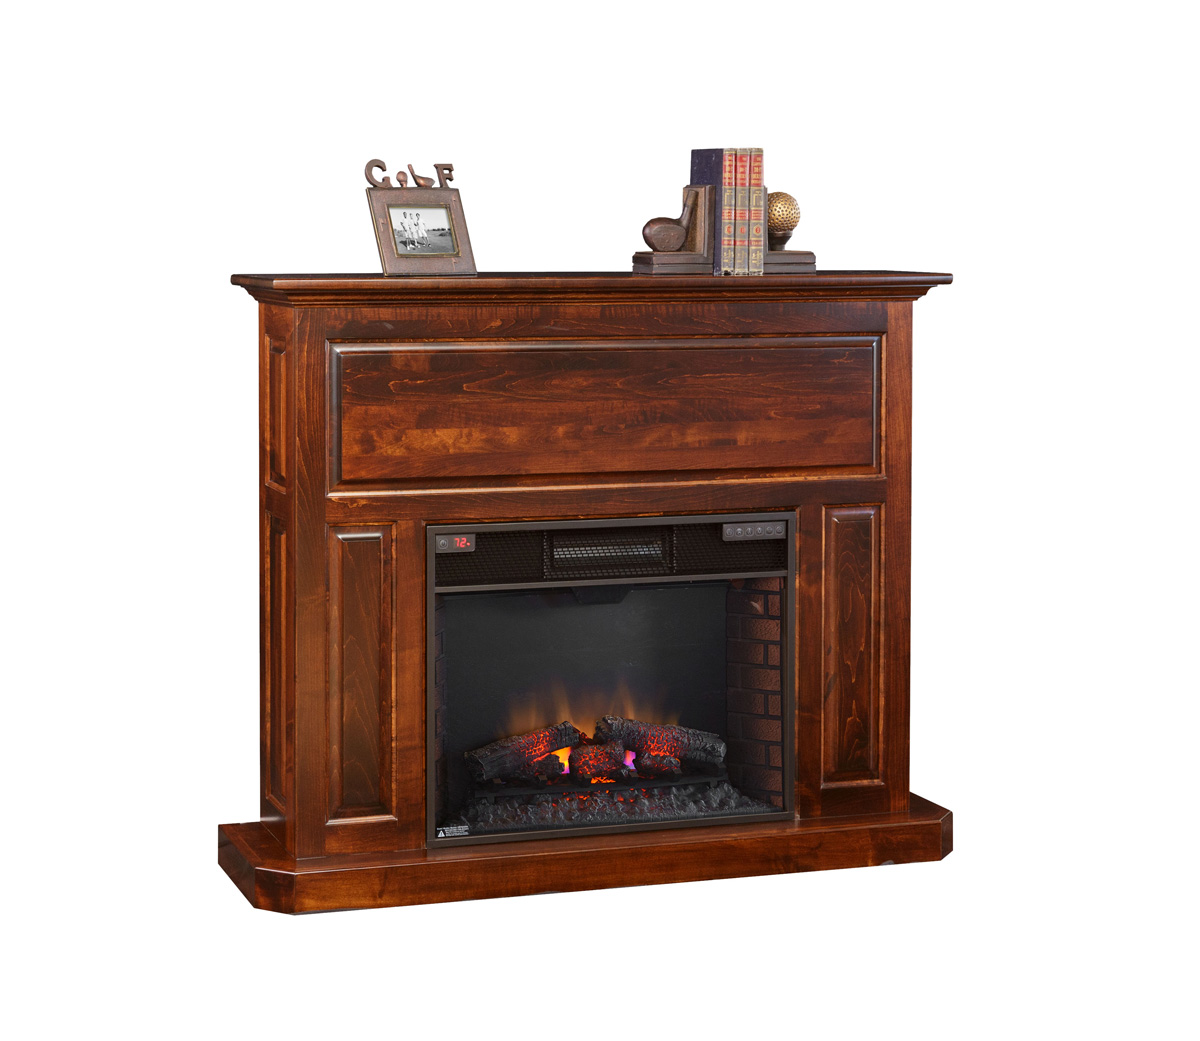 Fireplace mantel with 28 insert amish furniture for Fireplace insert options